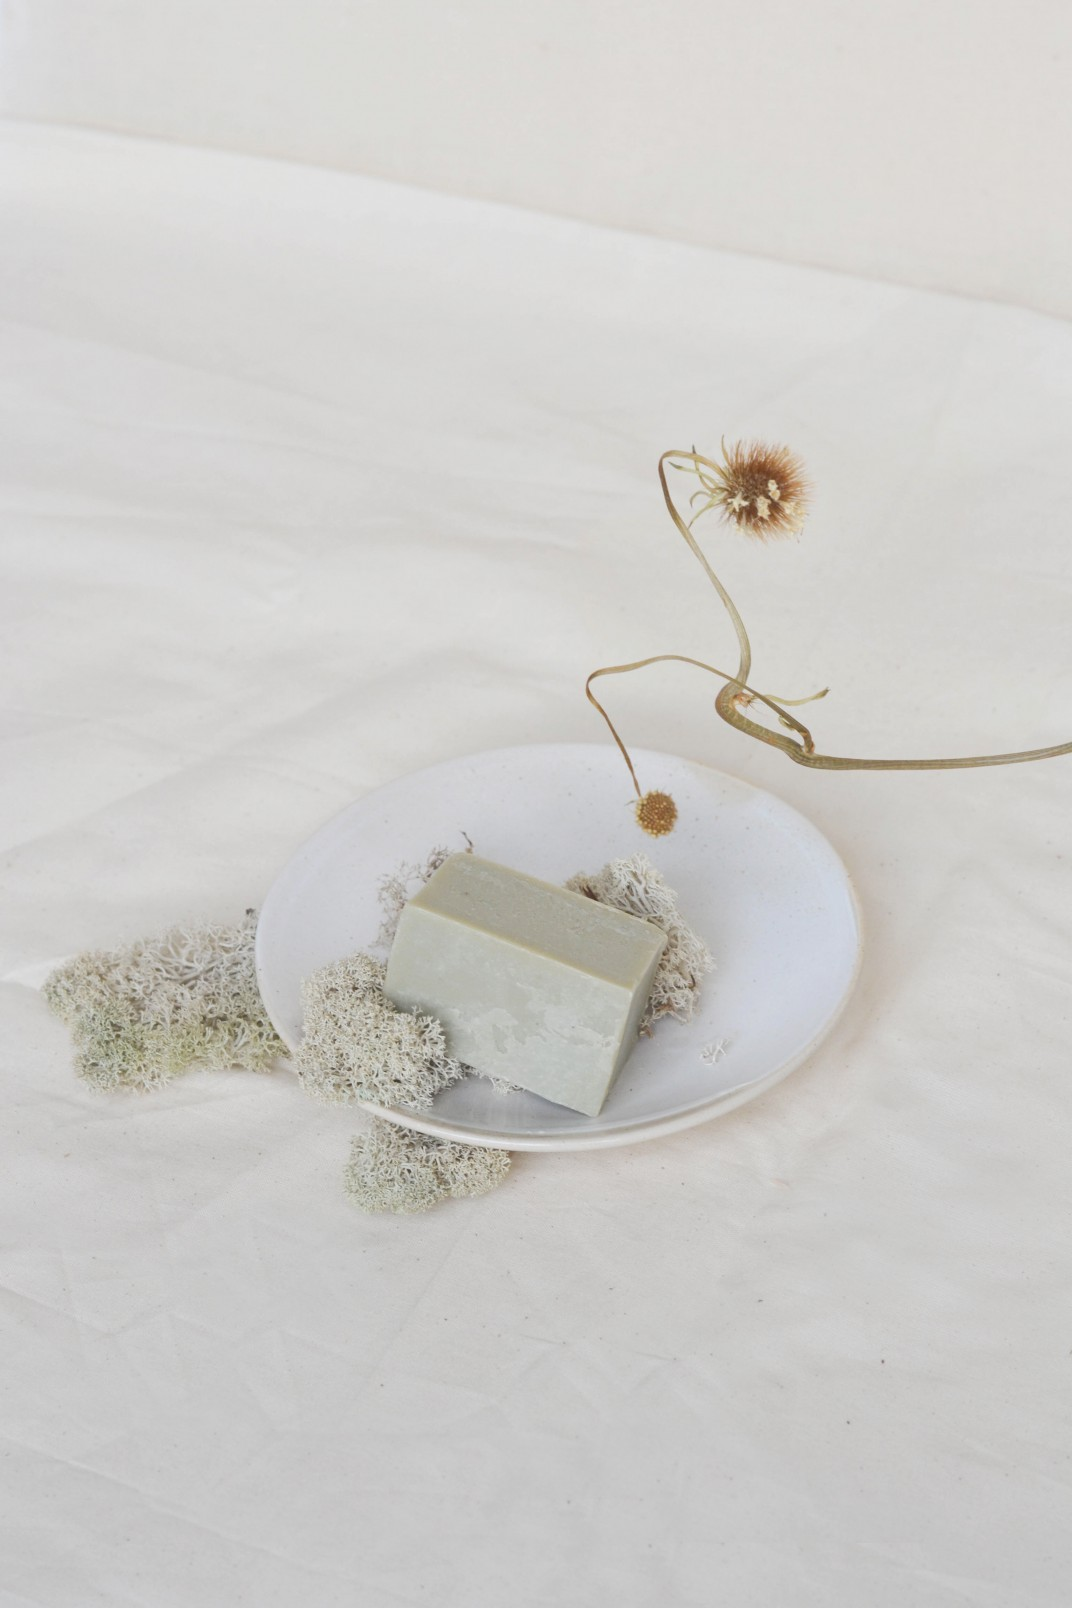 Sans [Ceuticals] Green Clay Cleansing Bar